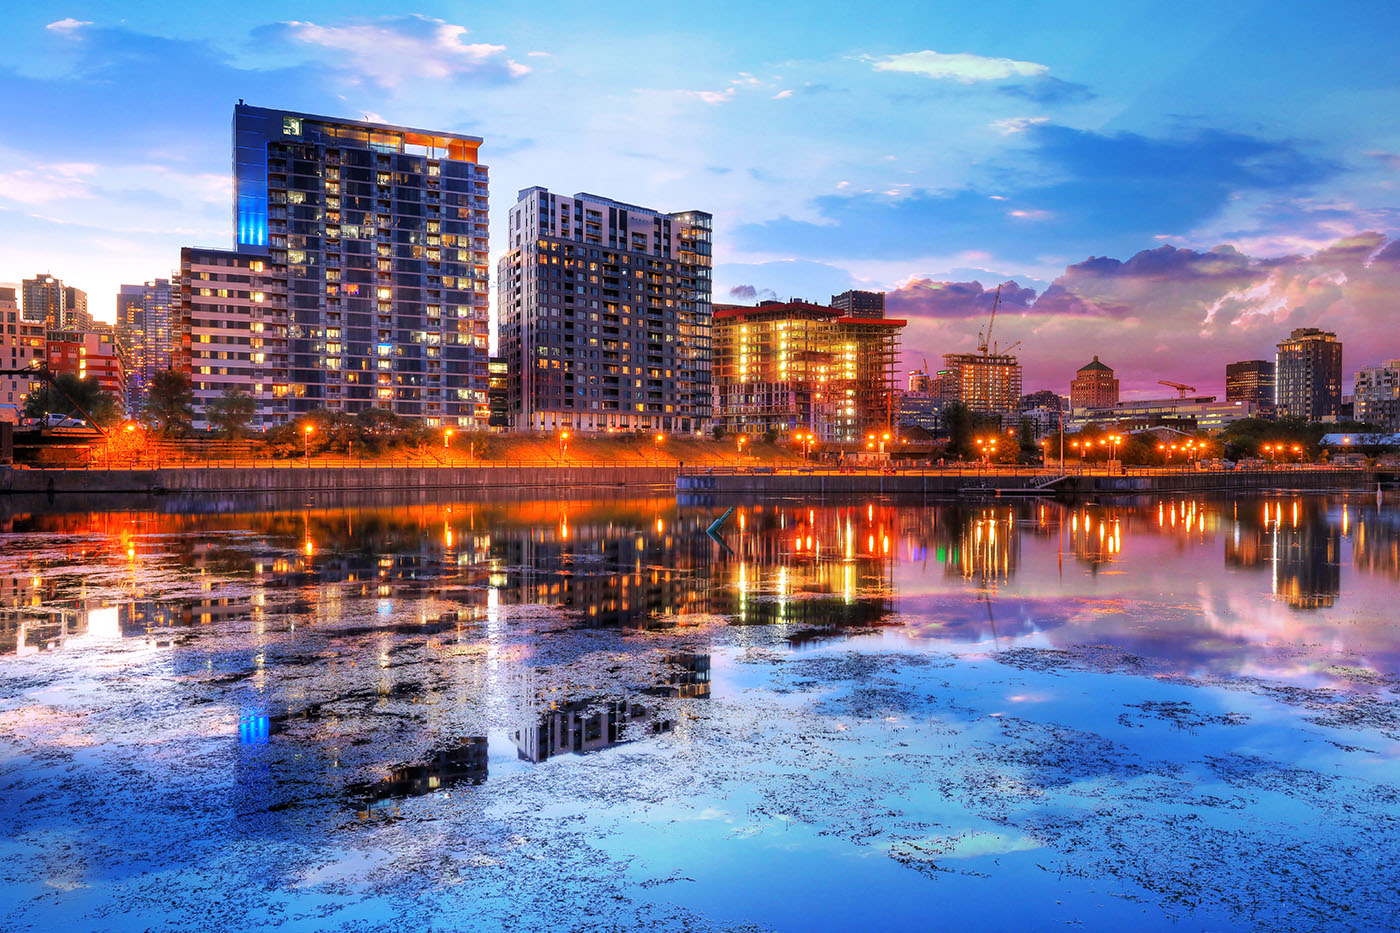 2020 Downtown Montreal City Water Reflection at Sunset - Royalty-Free Stock Imagery